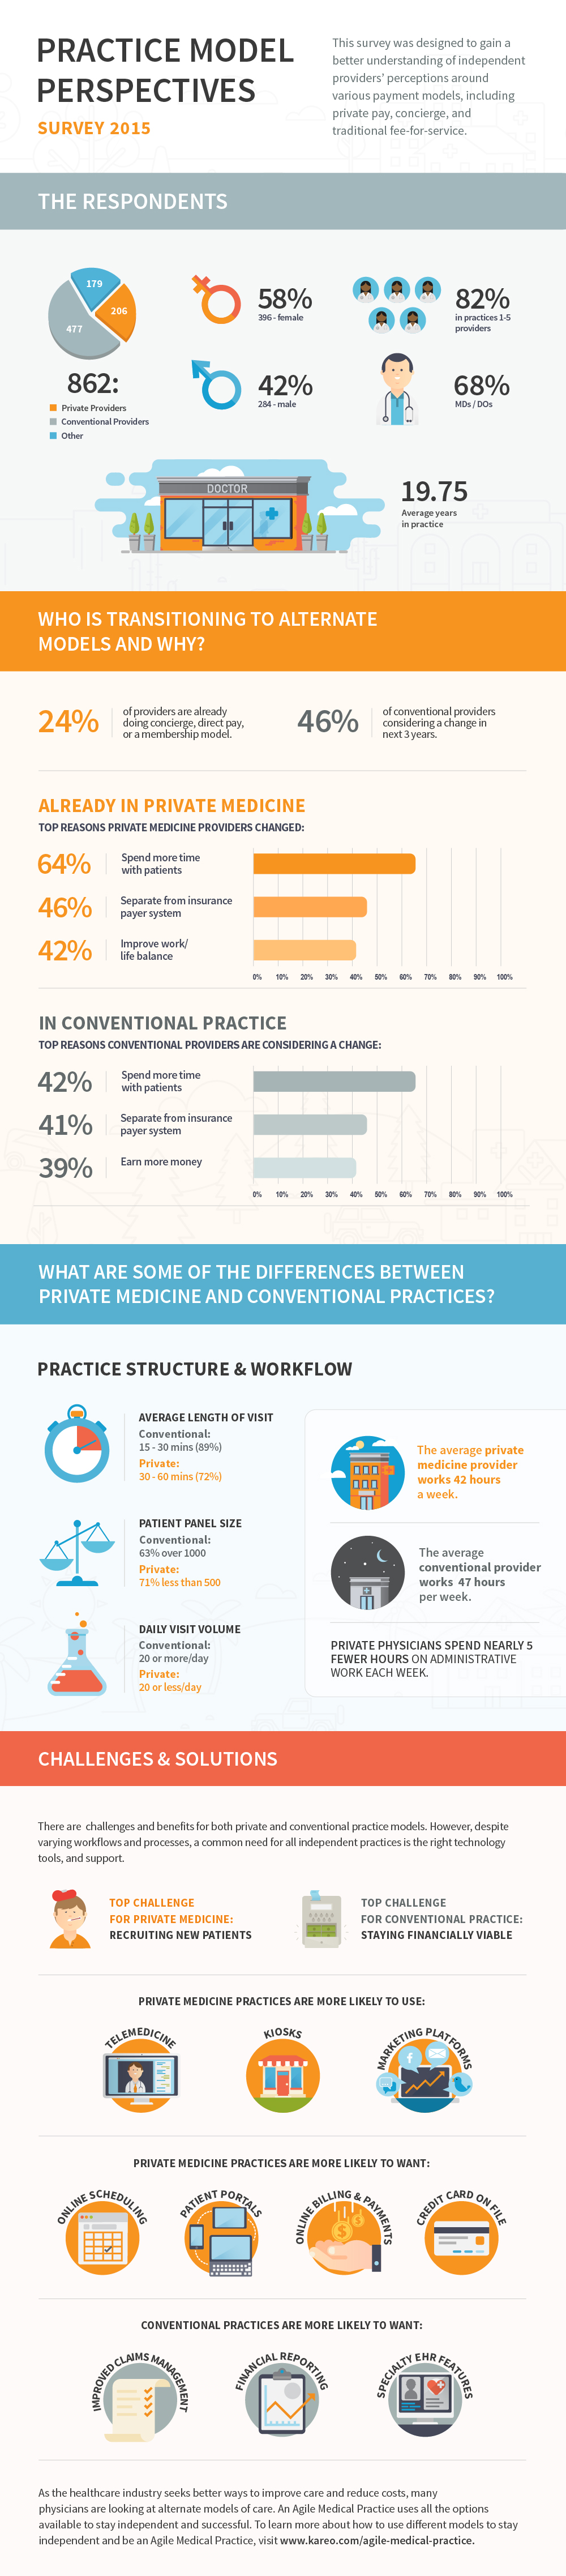 infographic-practice-model-perspectives